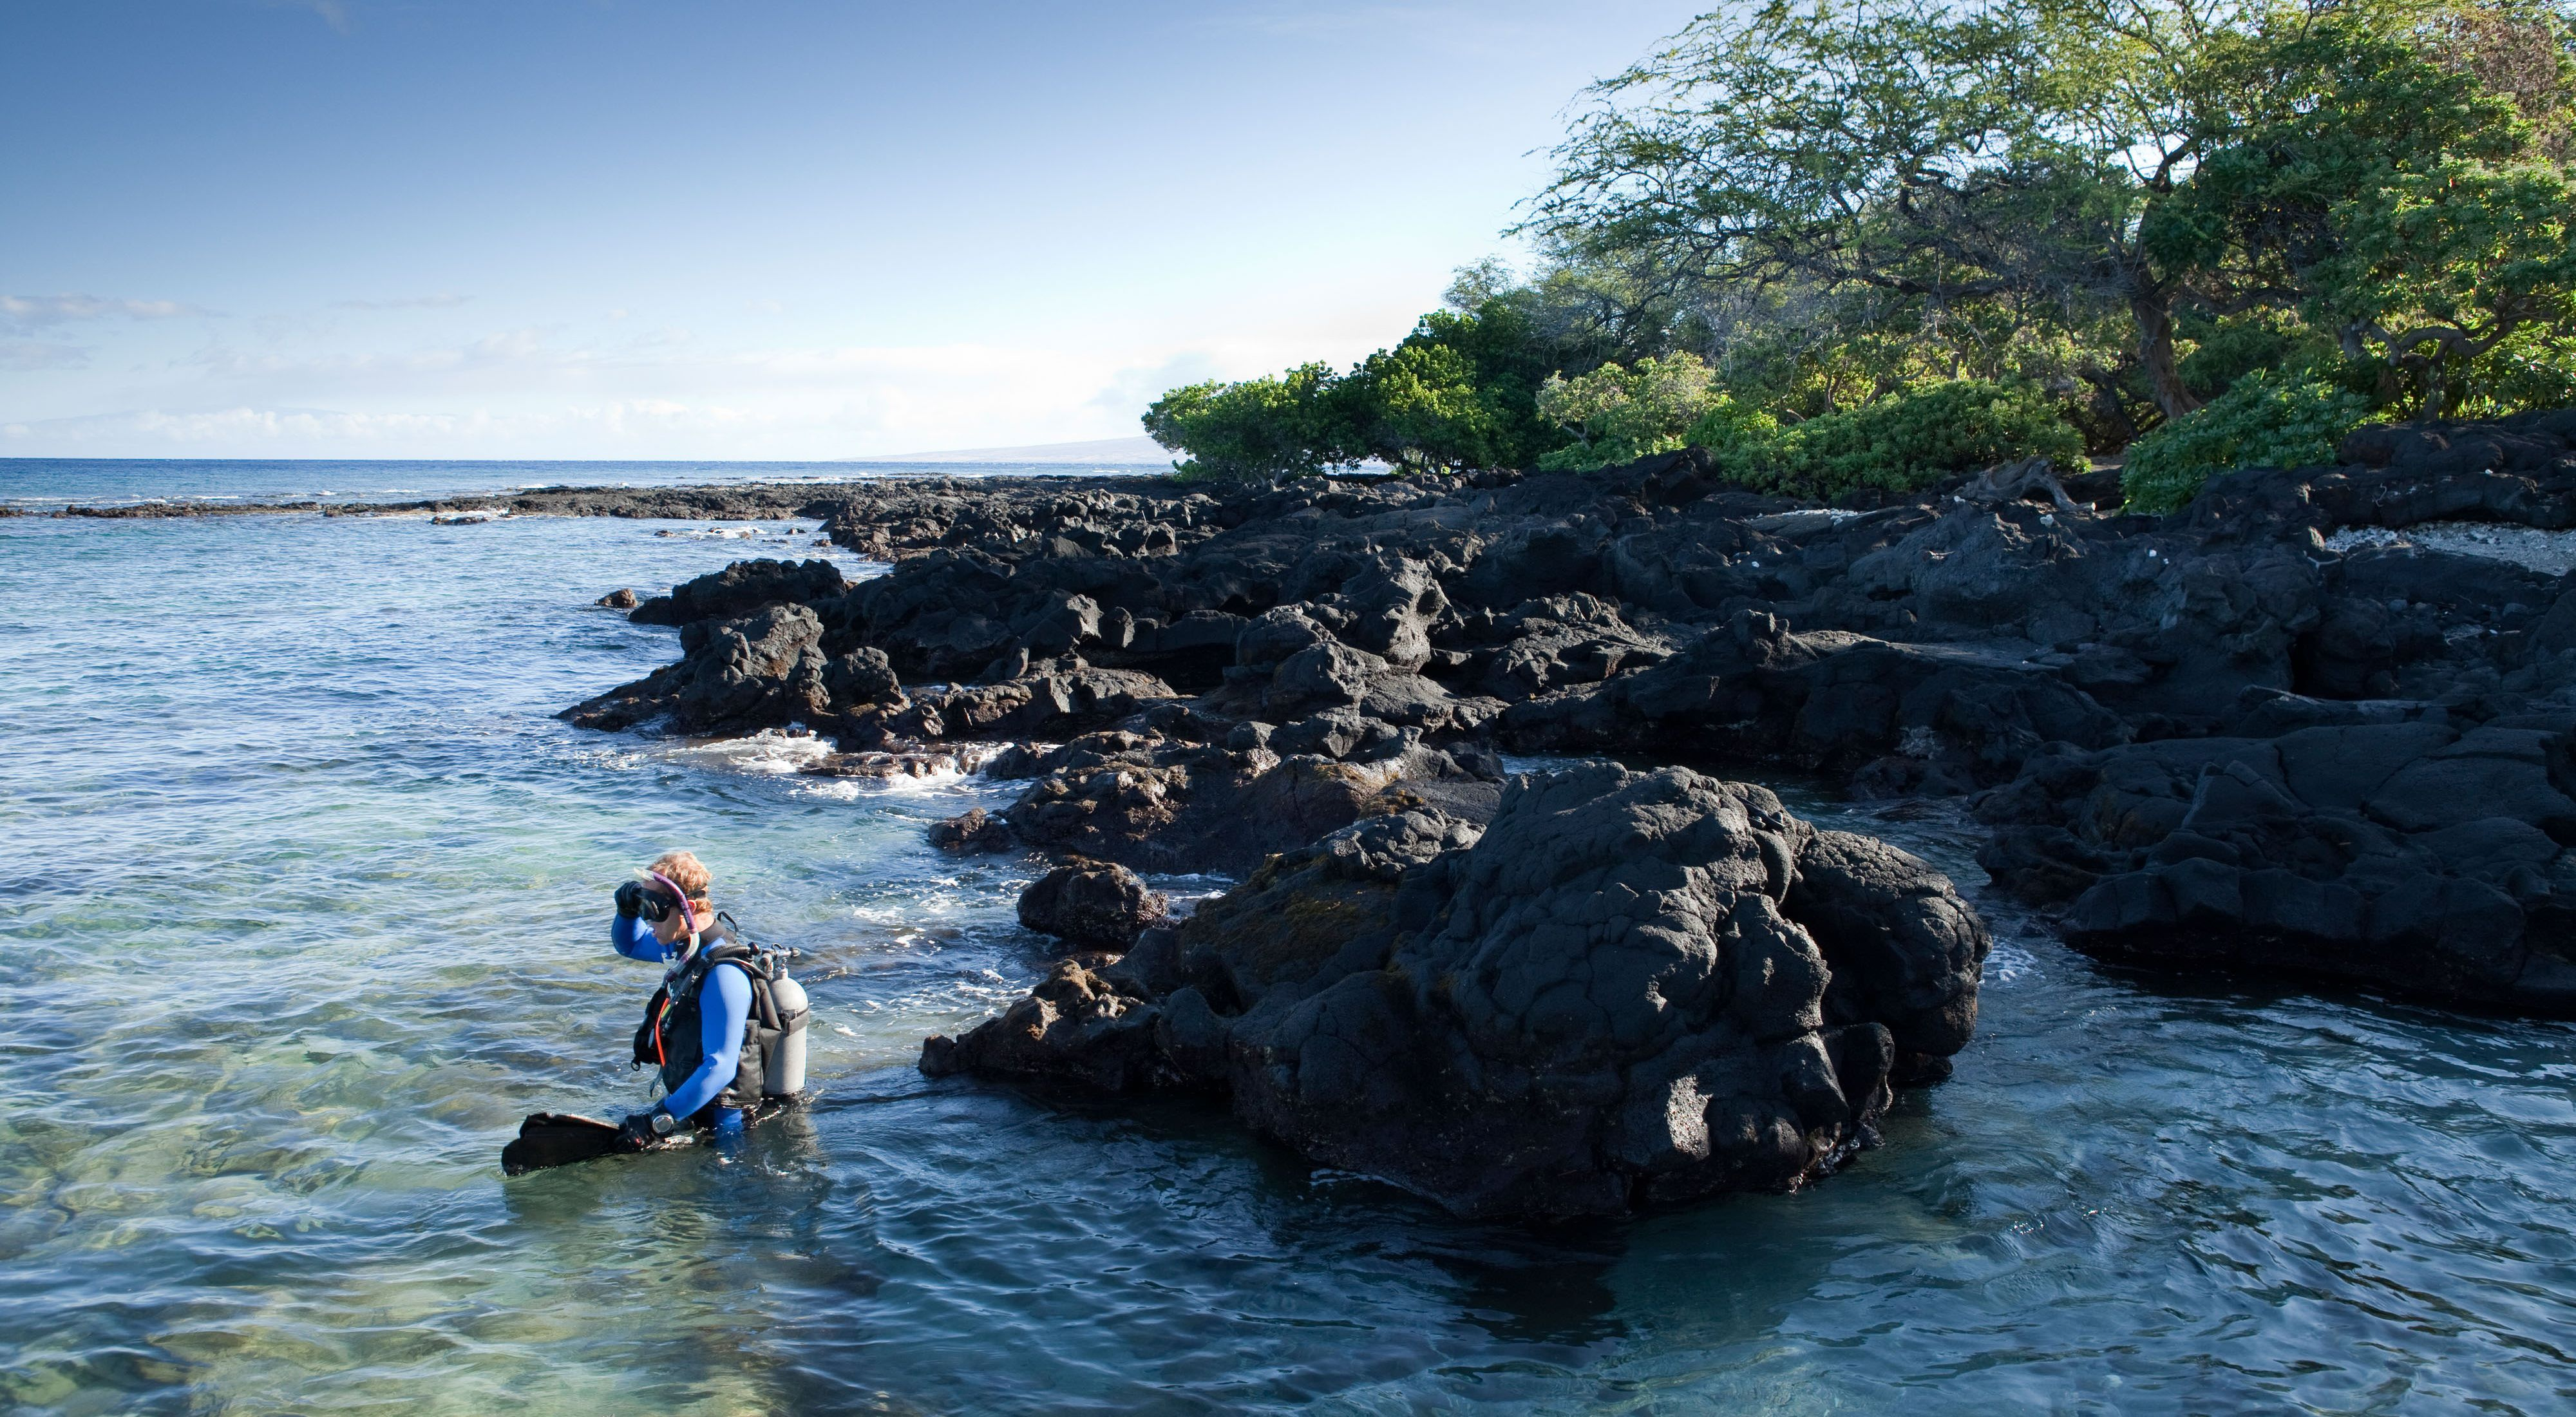 A diver entering the water from a rocky shore.